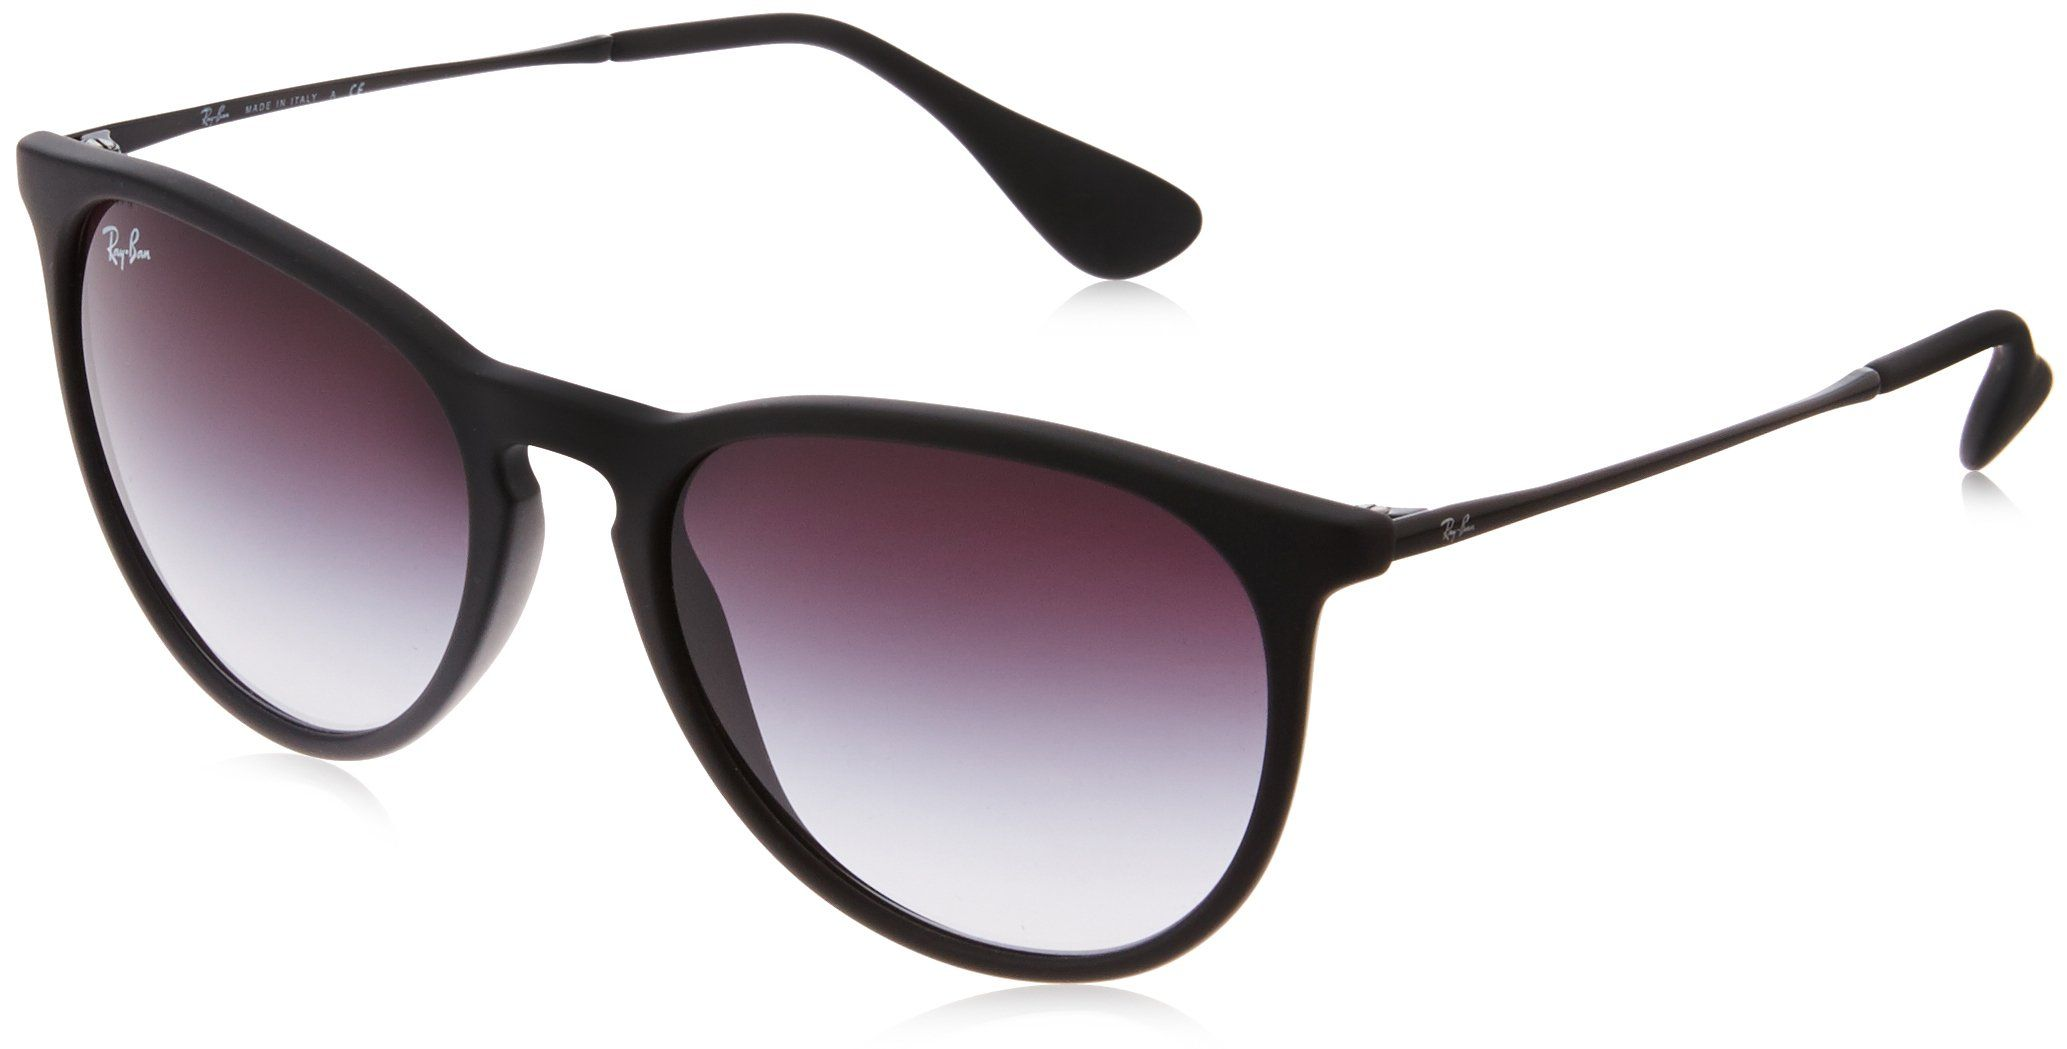 Ray-Ban Women's Erika Round Sunglasses,Non-Polarized,Black ...